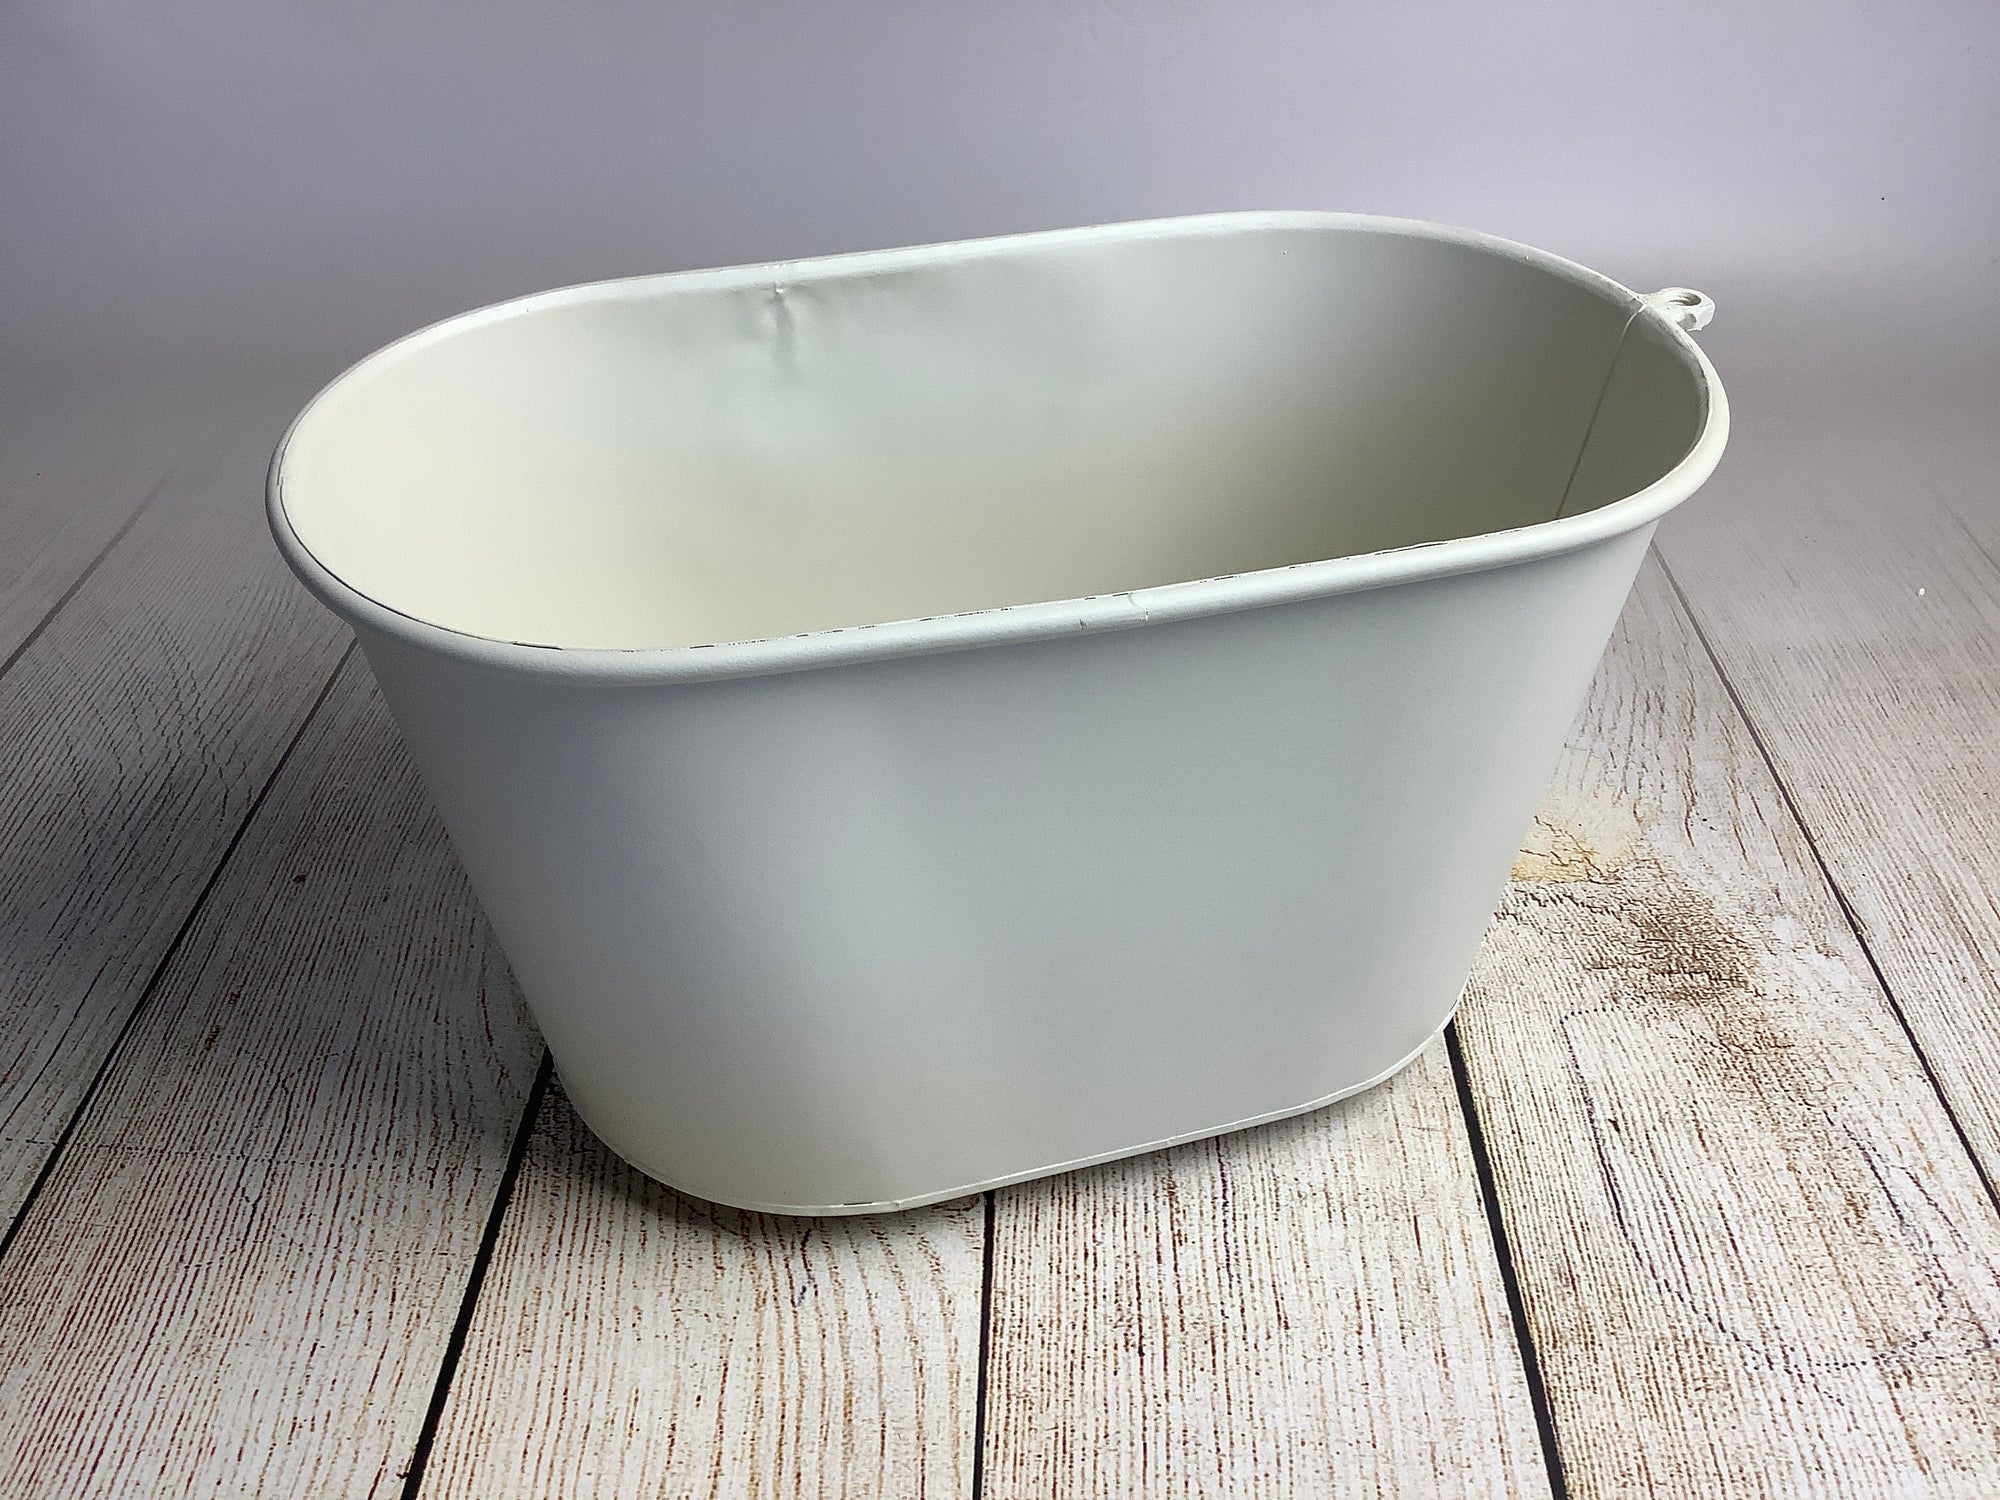 Vintage Bathtub - White (AS IS ITEM)